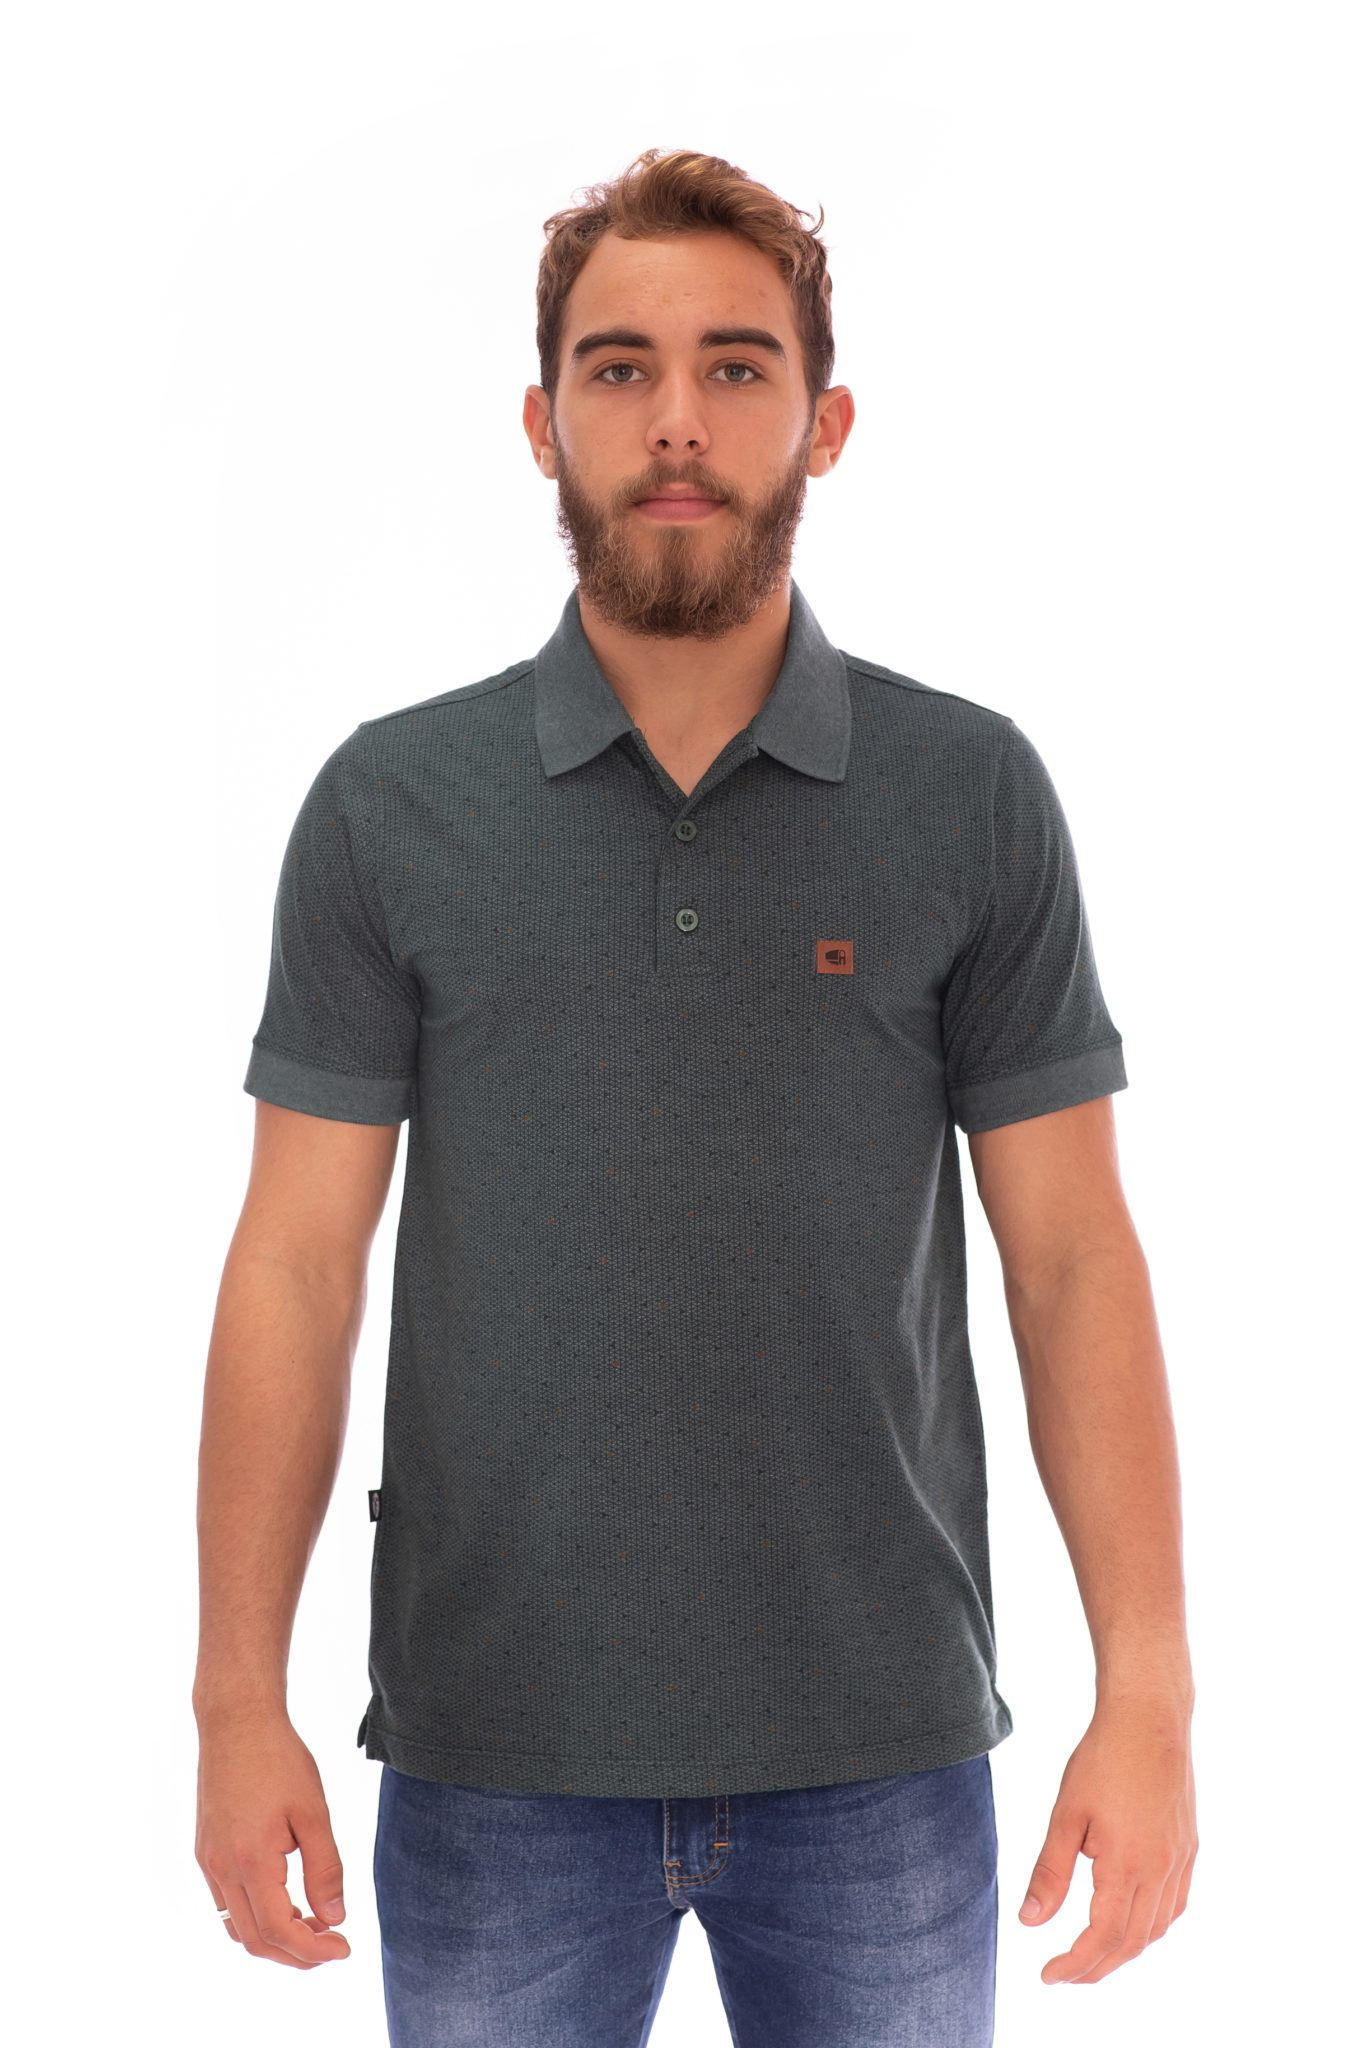 CAMISA GOLA POLO AEE SURF SLIM CONNECT VERDE REF. 116